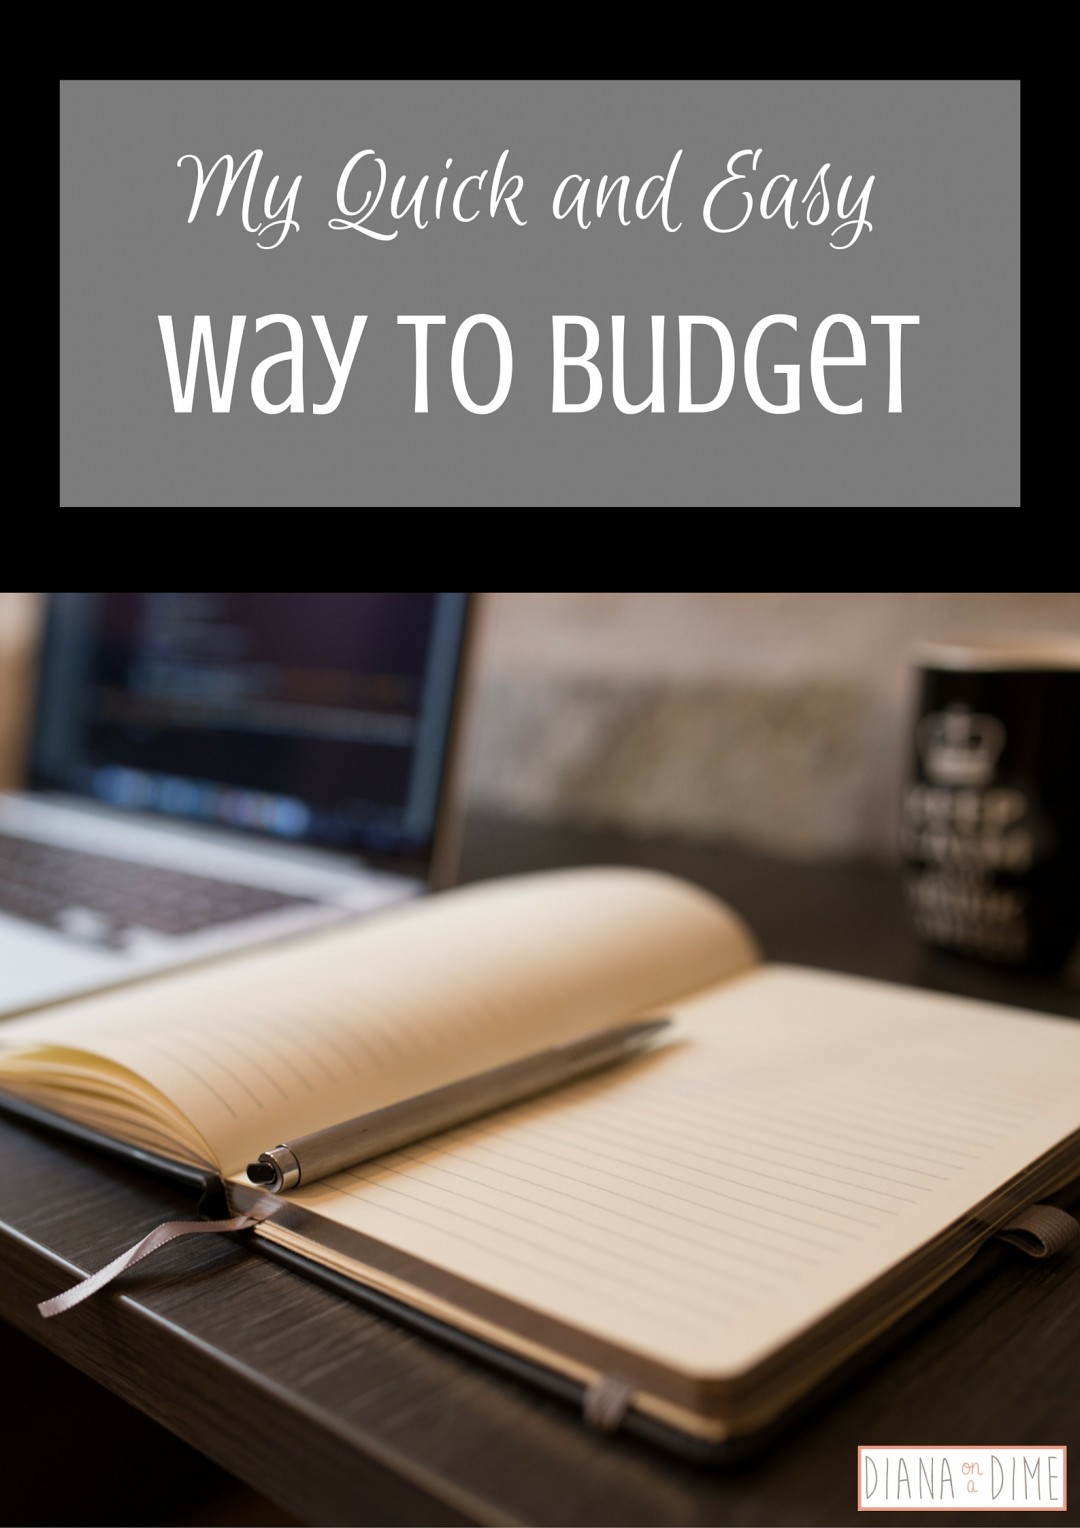 My Quick and Easy Way to Budget